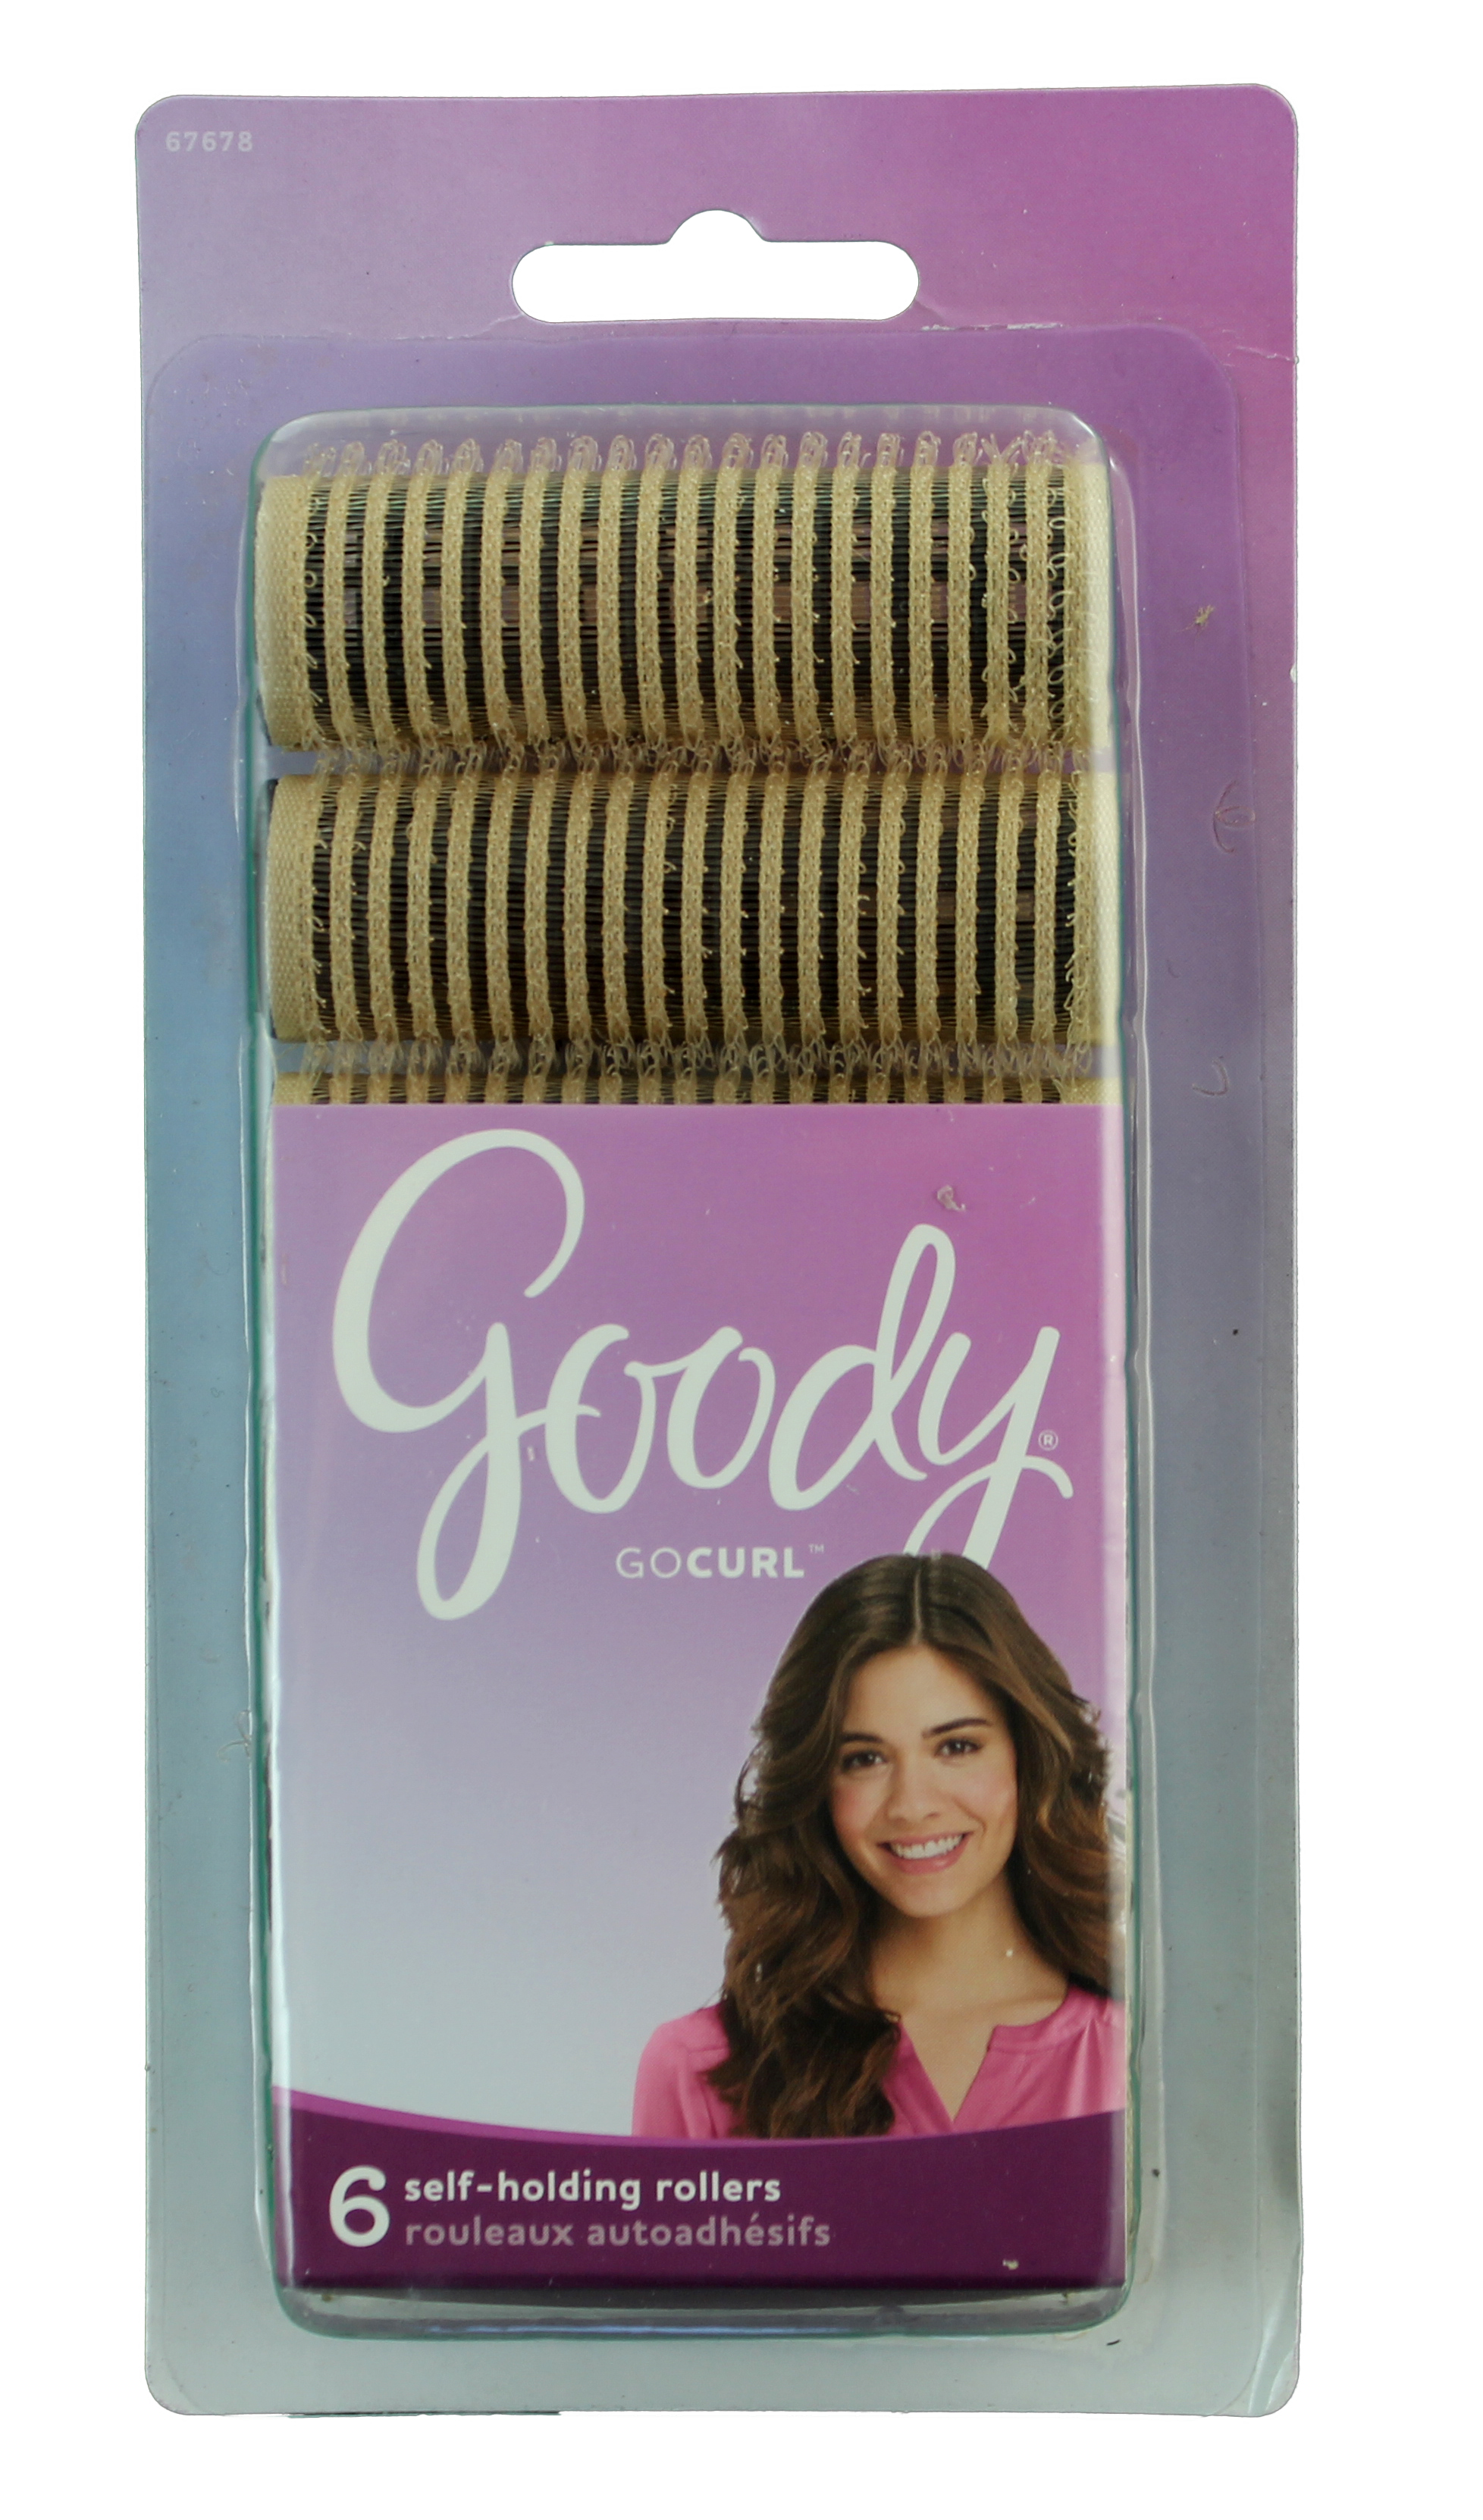 Goody Small Self Holding Bouffant Rollers, 6 CT